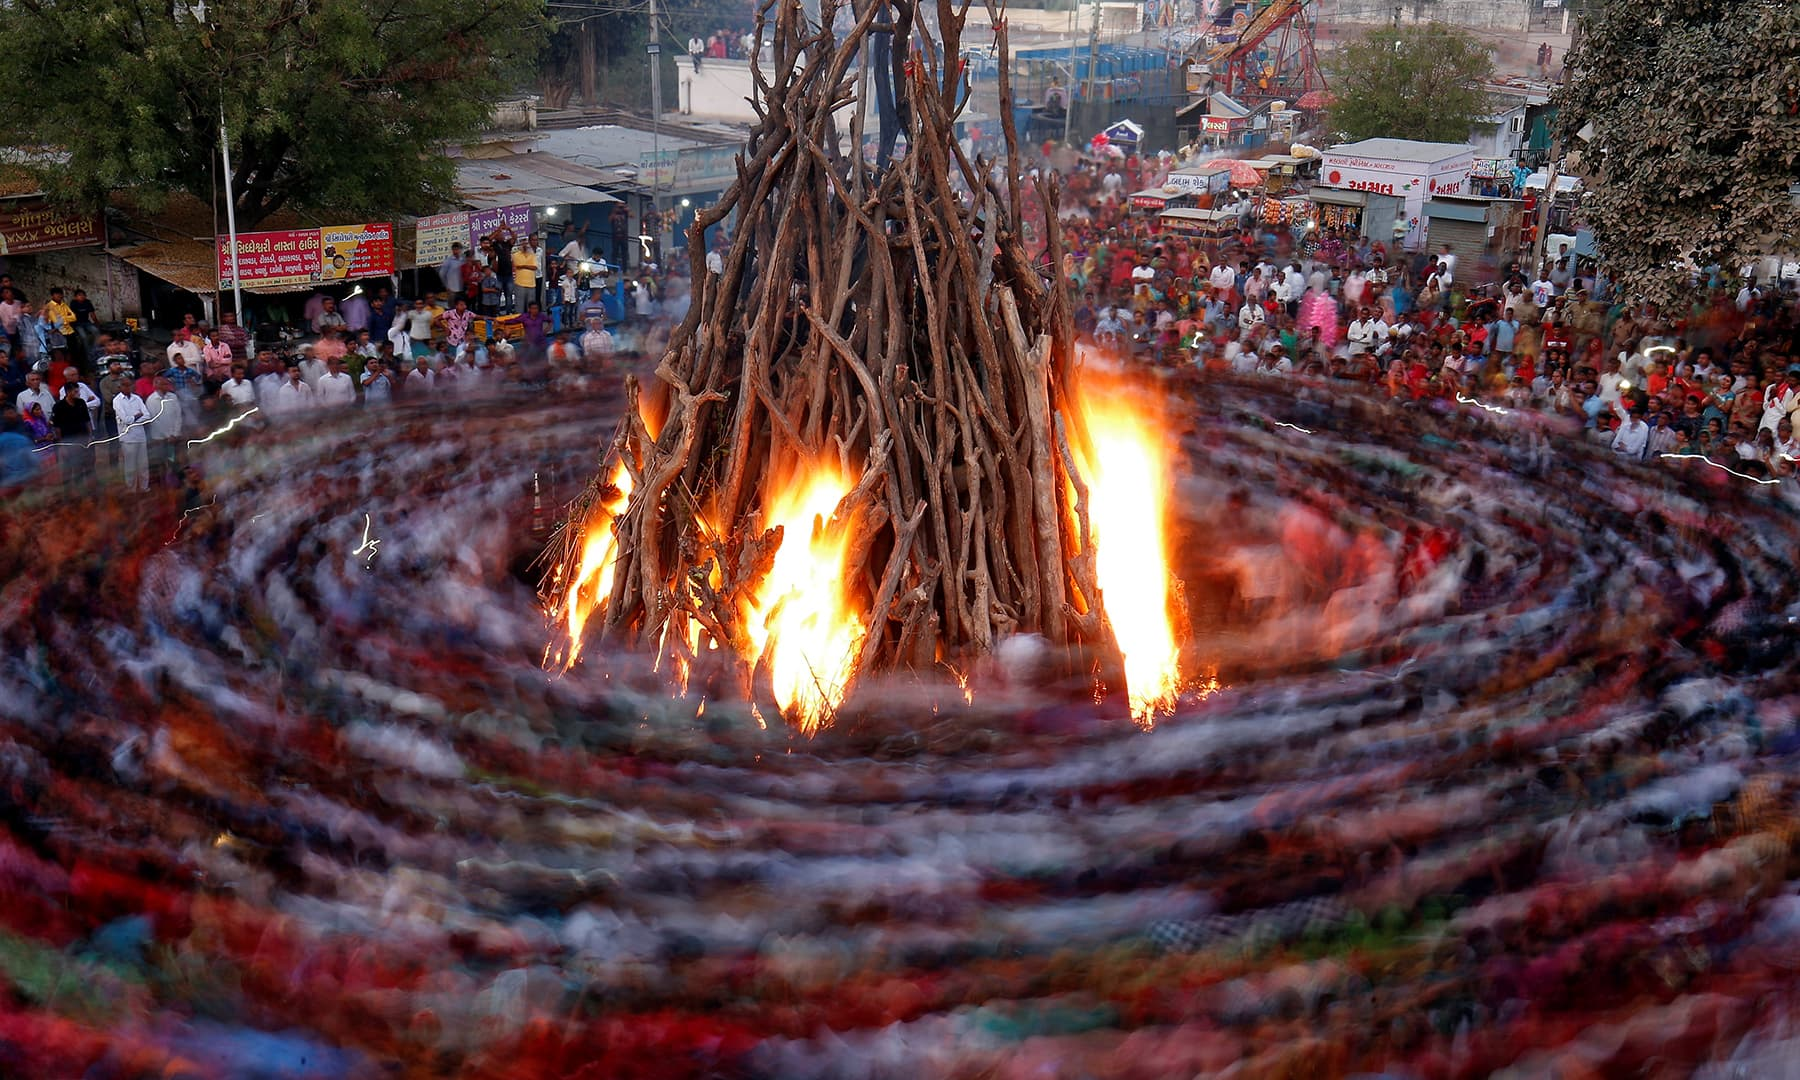 """Hindu devotees walk around a bonfire during a ritual known as """"Holika Dahan"""" which is part of Holi festival celebrations in Ahmedabad, India. — Reuters"""